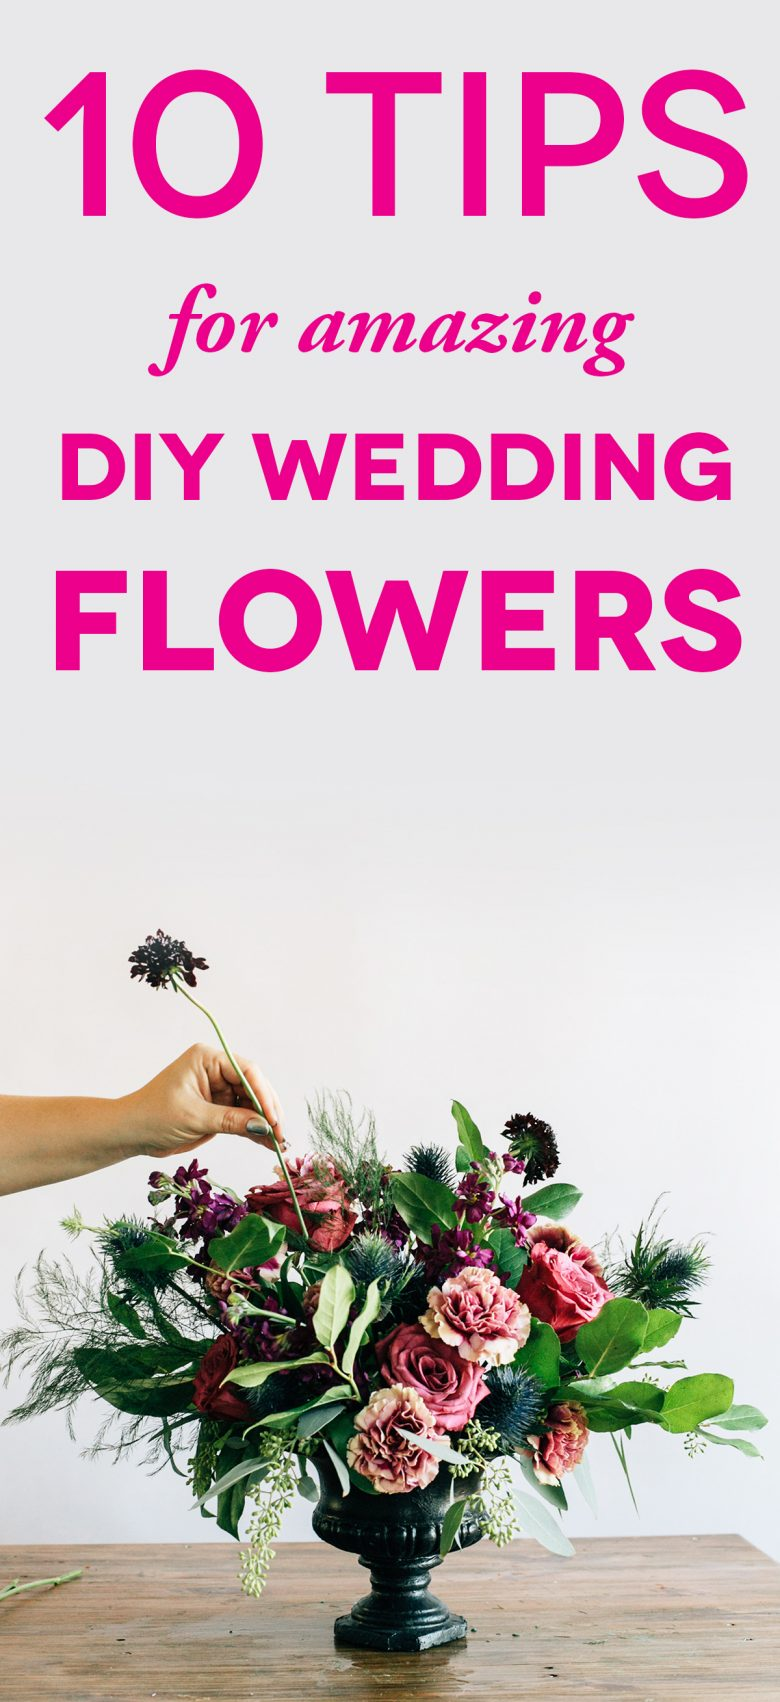 diy wedding flowers wedding flower arrangements picture of someone arranging flowers with text tips for DIY wedding flowers